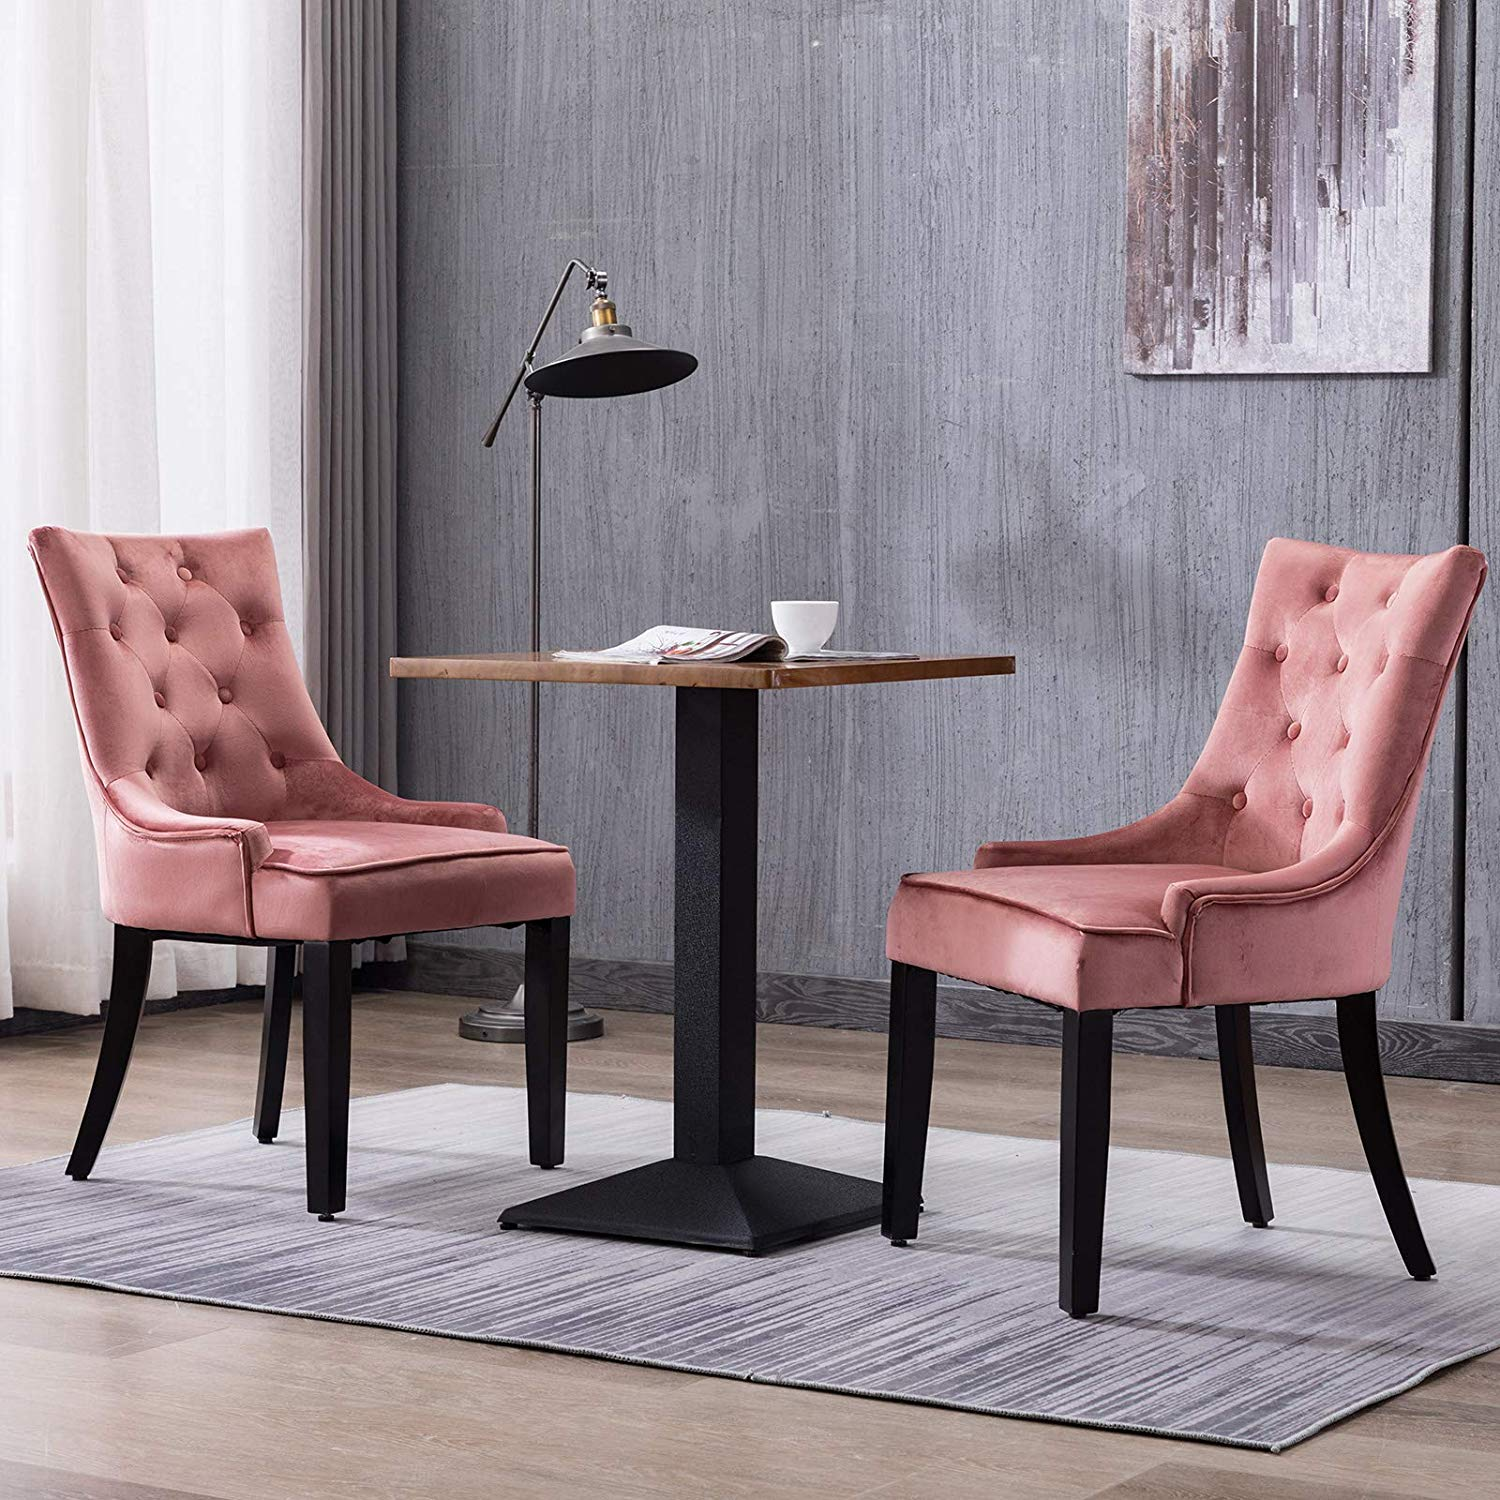 Advwin Set of 2 Dining Chairs Tufted Design Fabric Kitchen Cafe Chairs Wood Leg Pink(55.9cmW x46cm D x 93cm H)